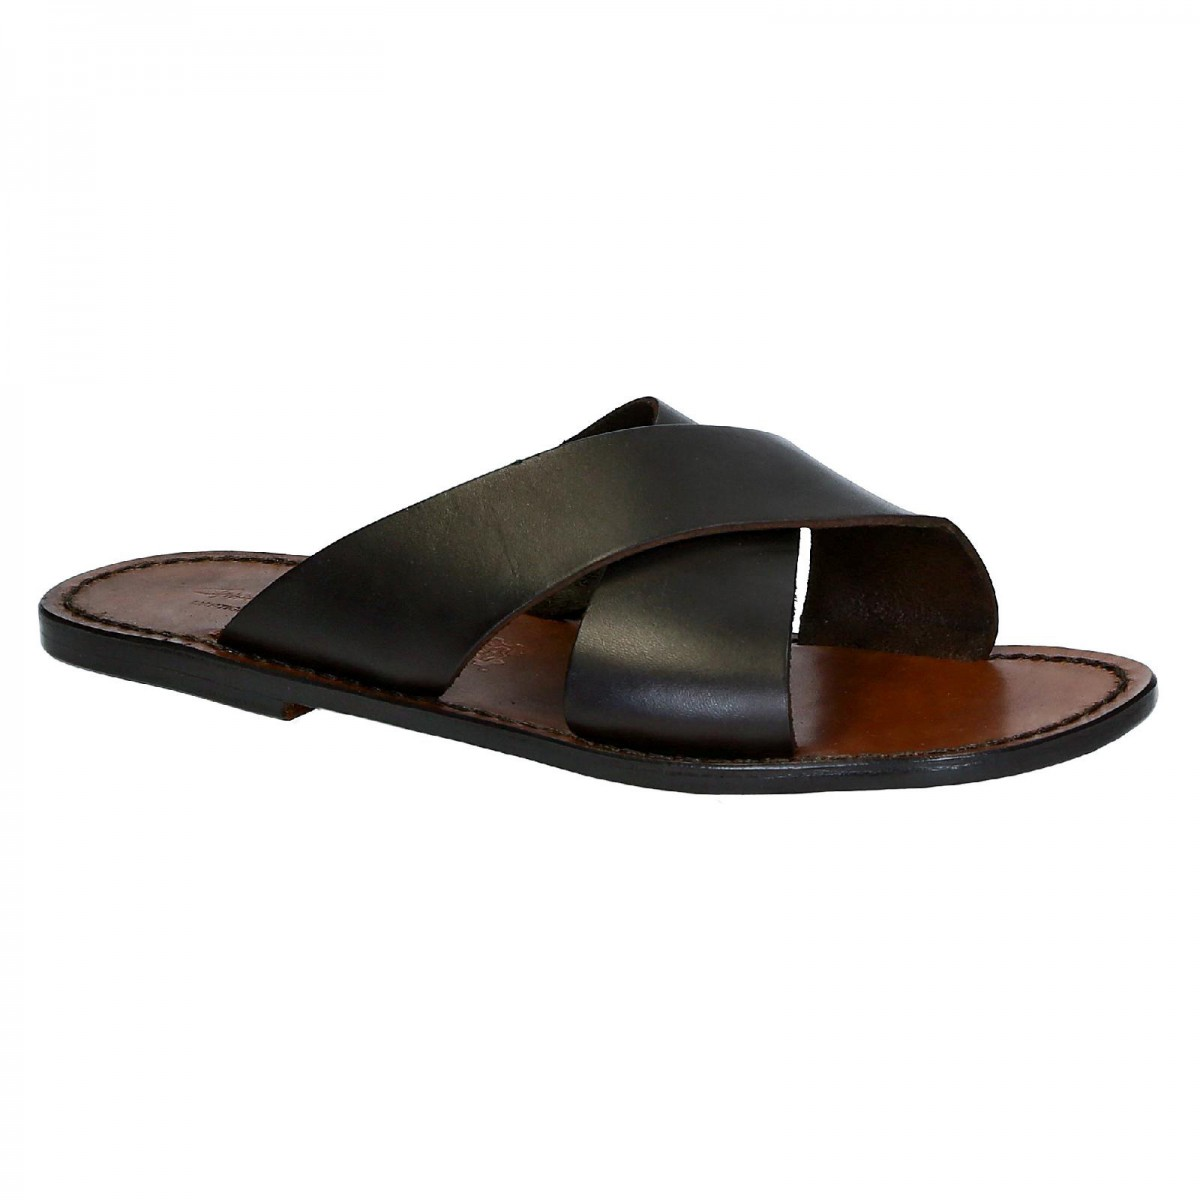 Mens leather slippers handmade in Italy